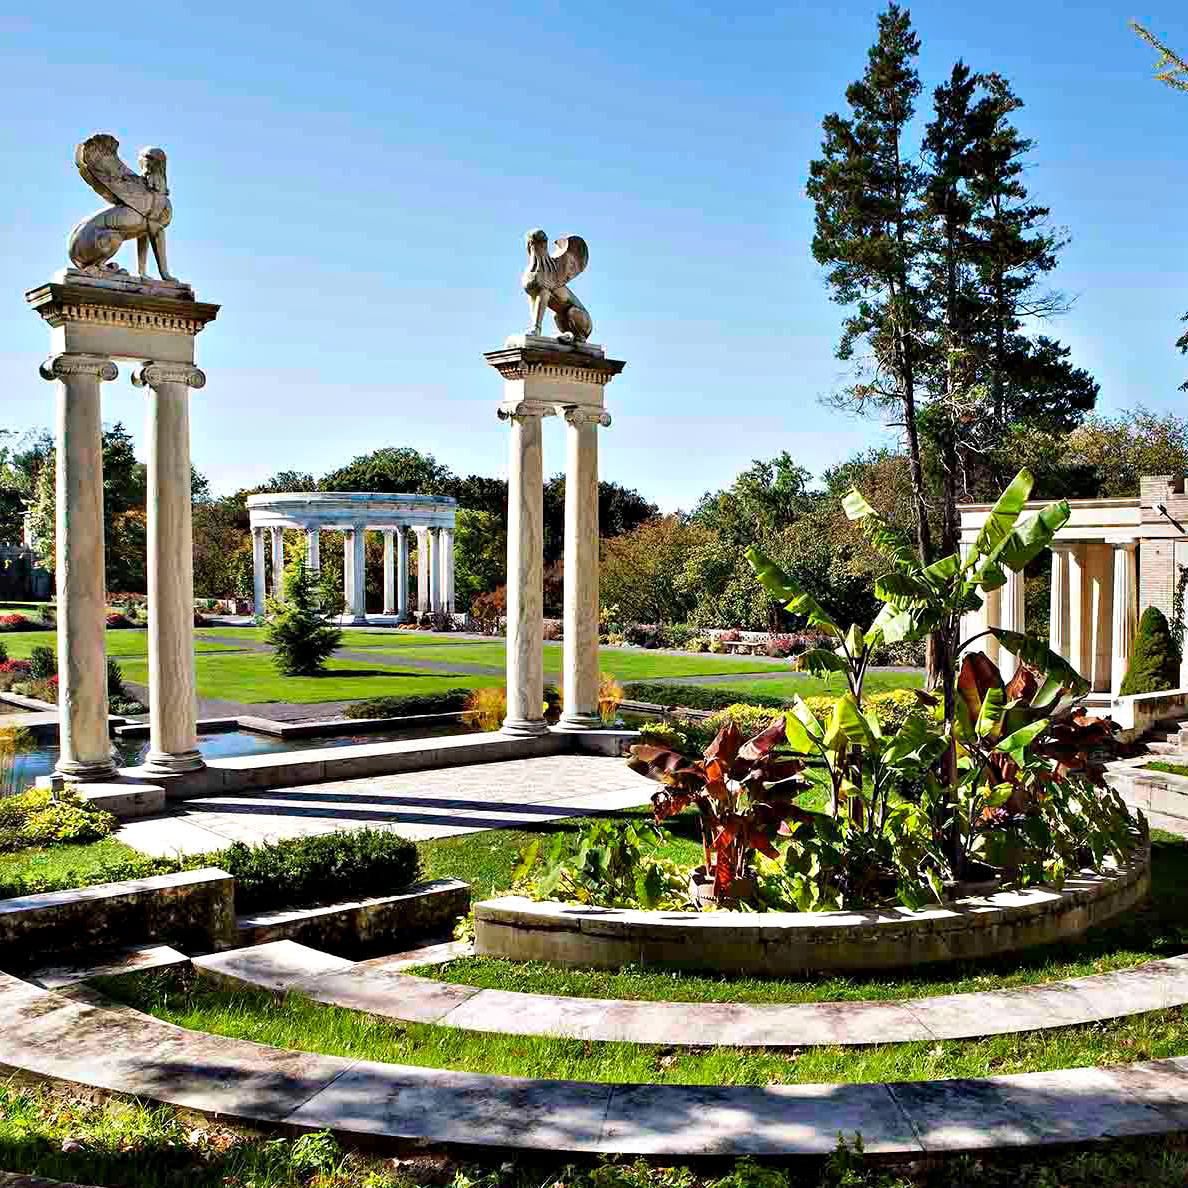 Garden Statues Yonkers: Parks & Facilities